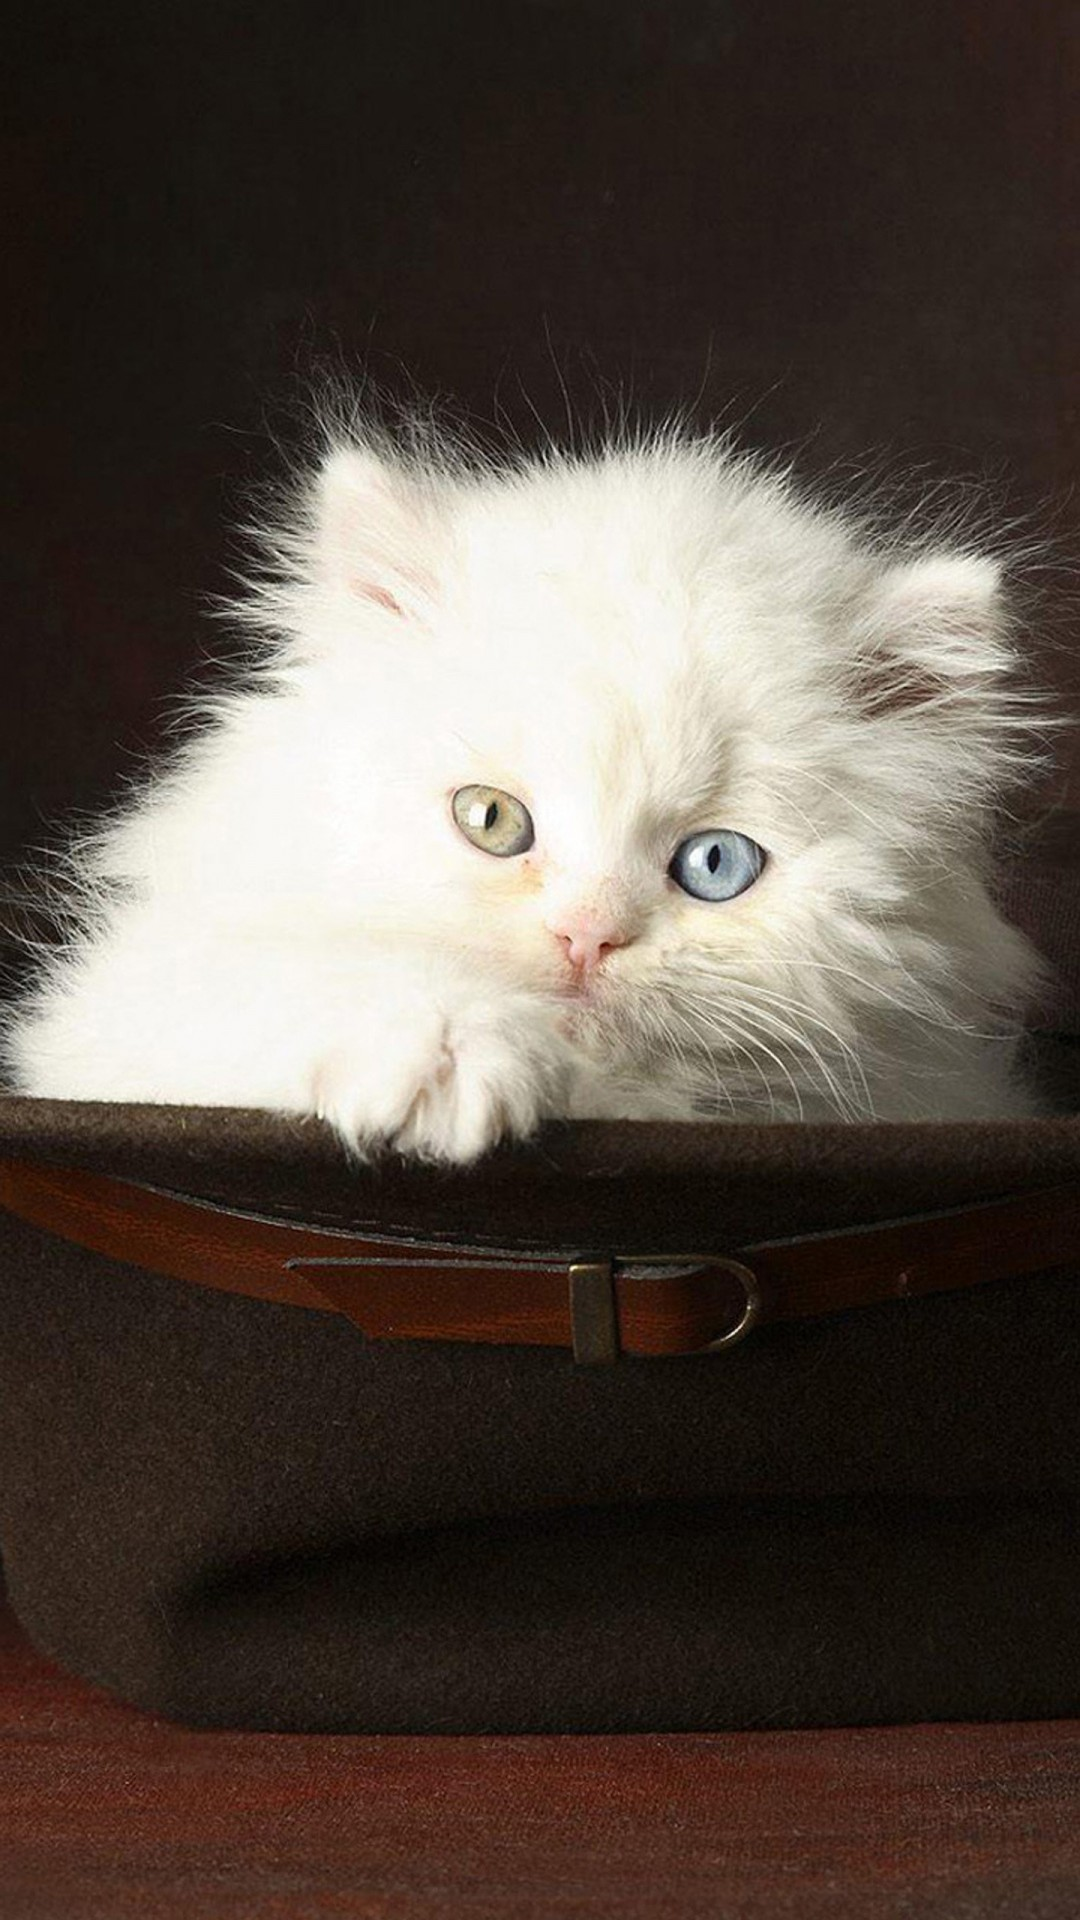 Cute Cats Hd Wallpapers For Iphone 6s Plus Page 2 Wallpapers